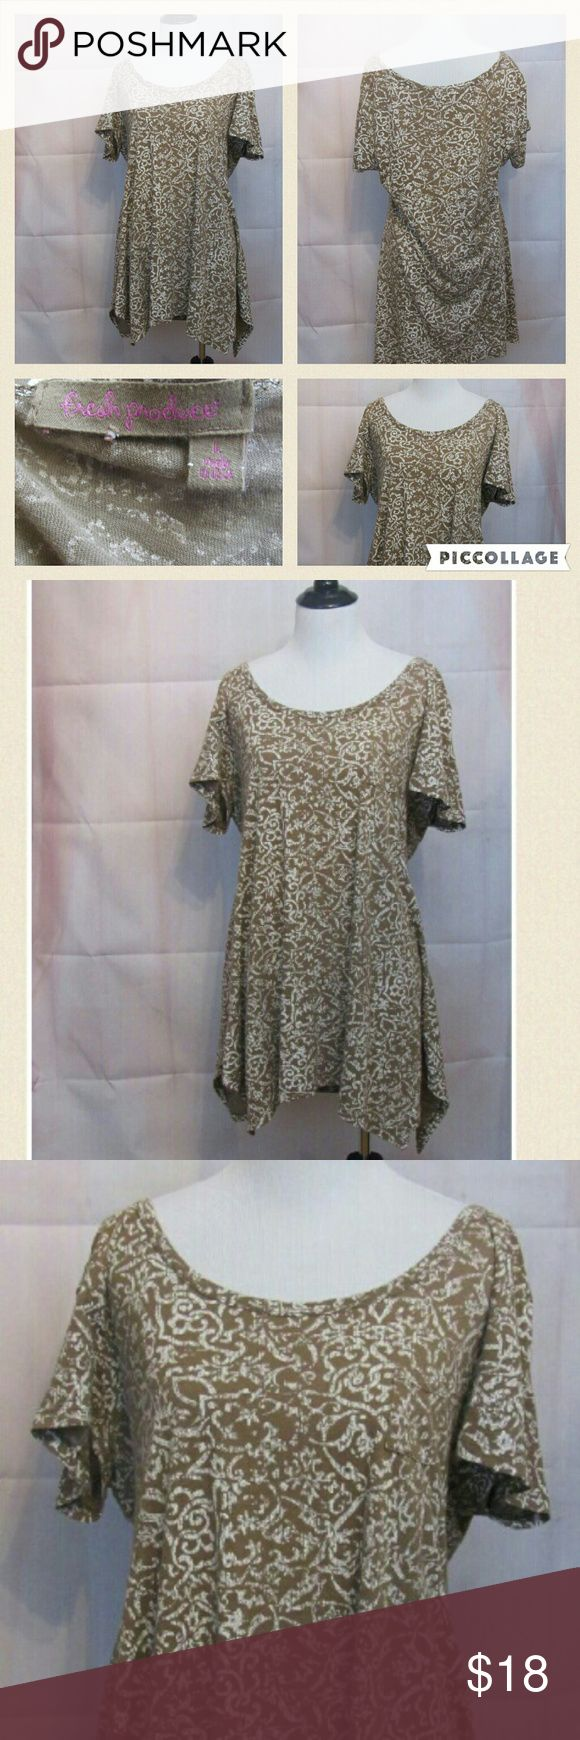 "Fresh Produce Tan Beige Short Sleeve Top L Great top. Scoop Neck. Short sleeve.   All clothes are in excellent used condition. No stains or holes.  Content: 100% cotton  Bust: 42"" Length: 29""  Posh11 Fresh Produce Tops Tees - Short Sleeve"